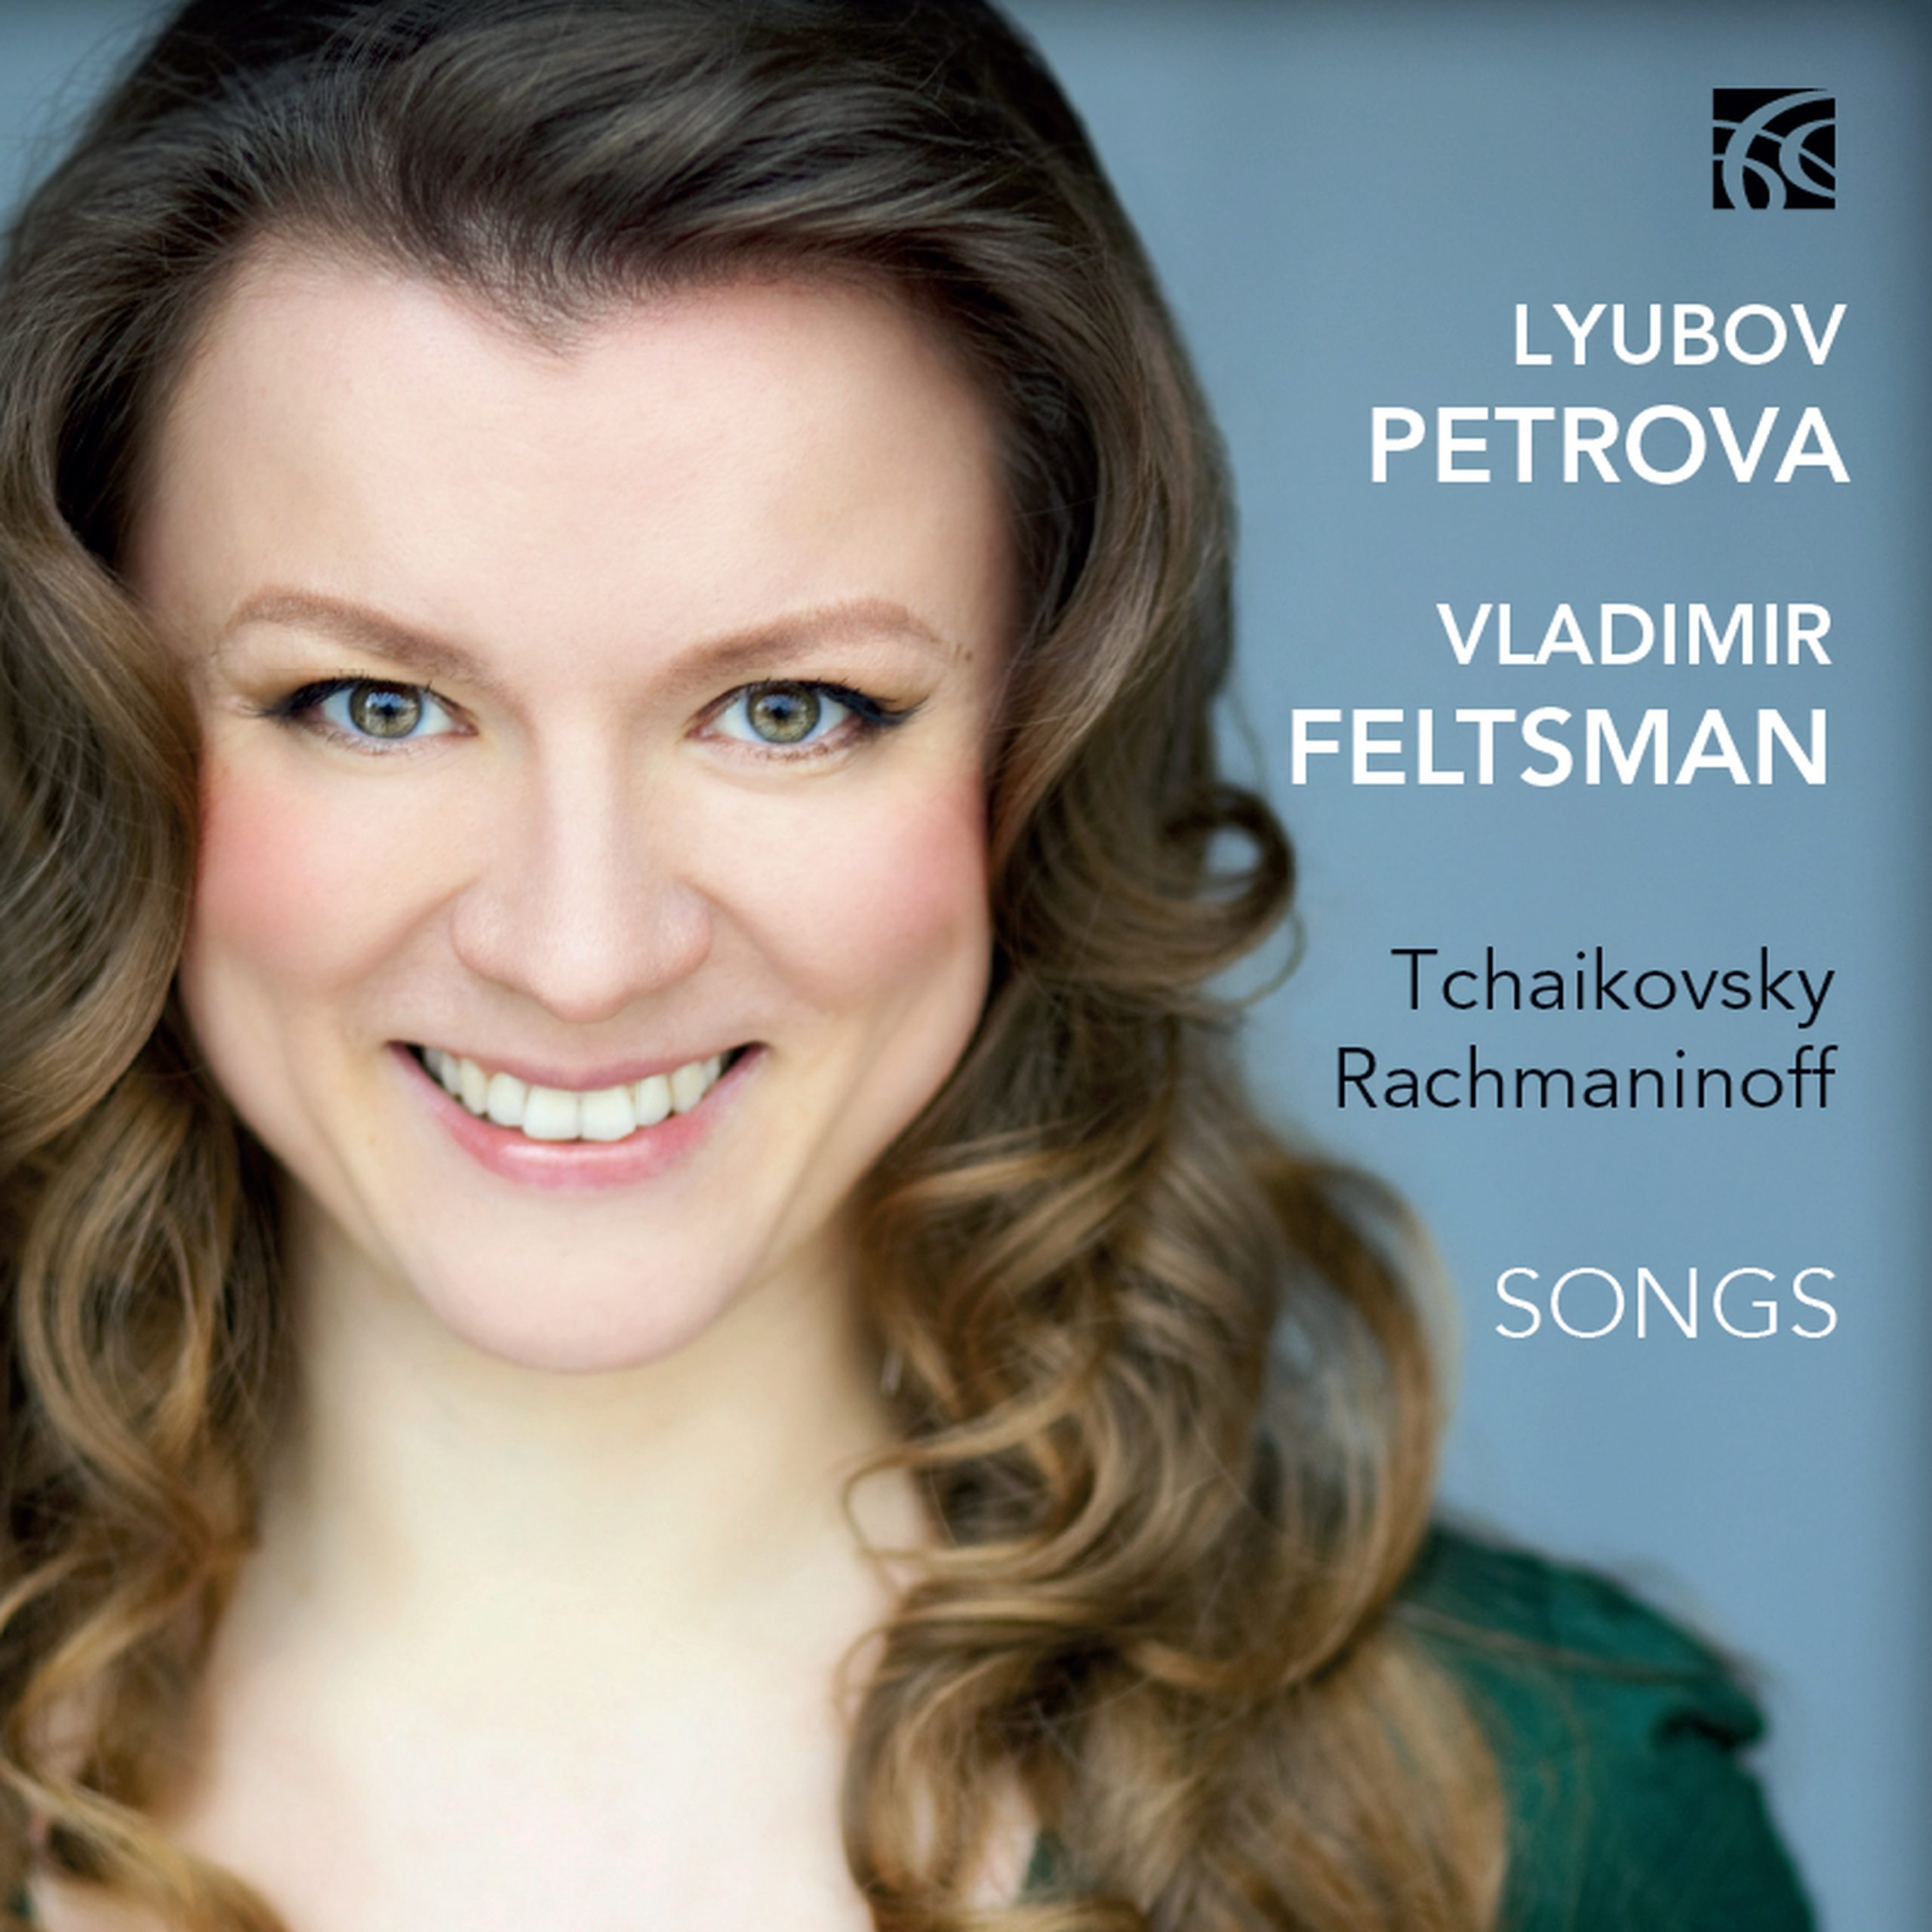 Petrova soprano Russian portrait head shot singer art opera album songs cover